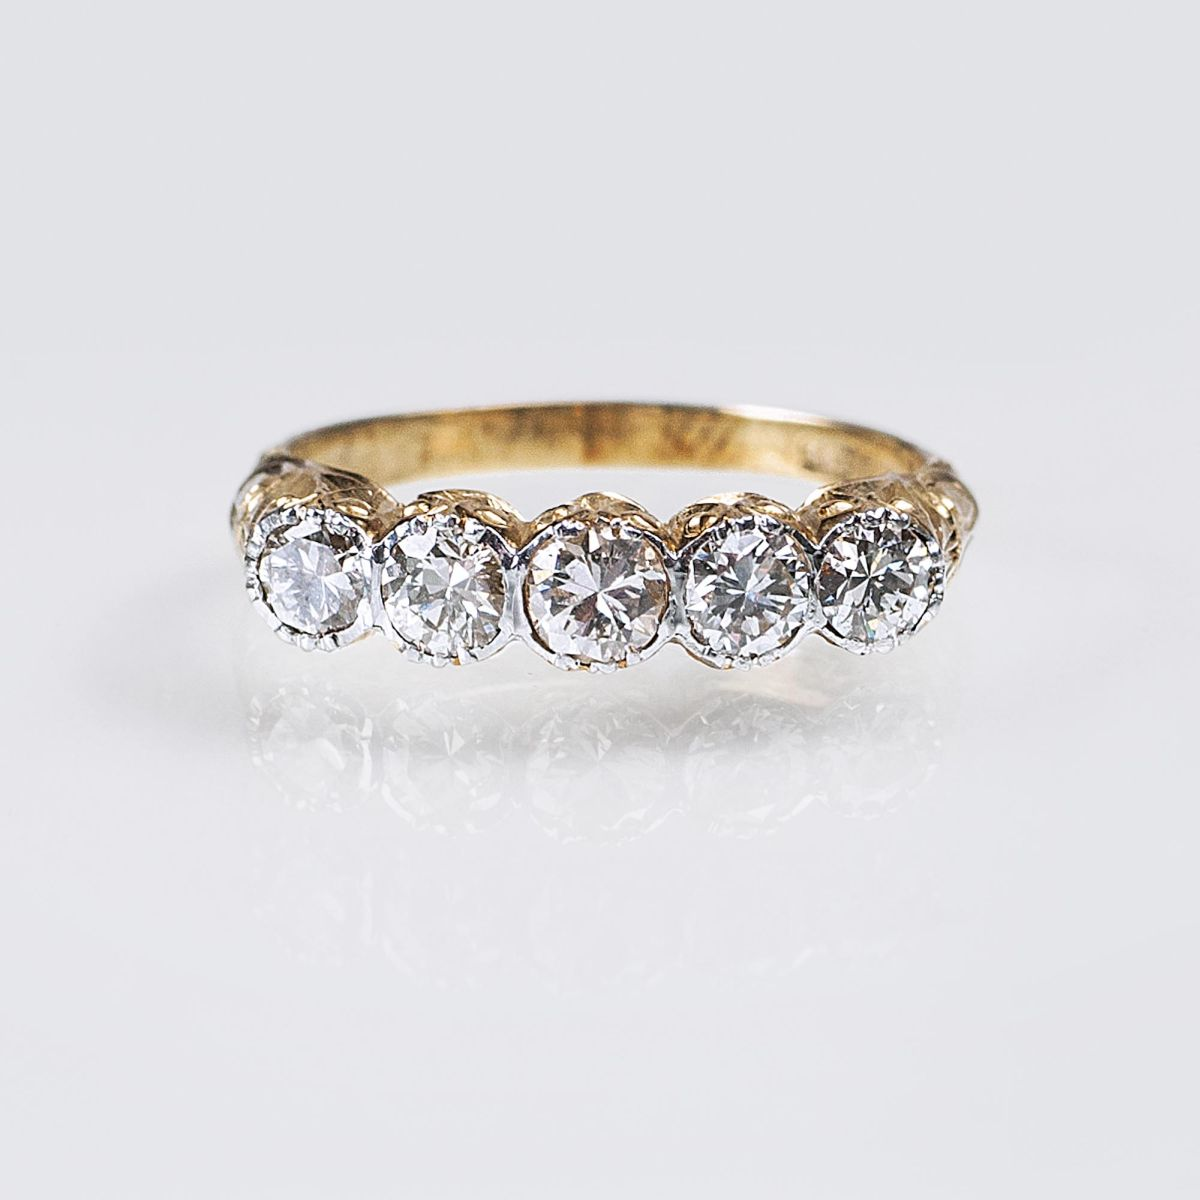 An antique Diamond Ring